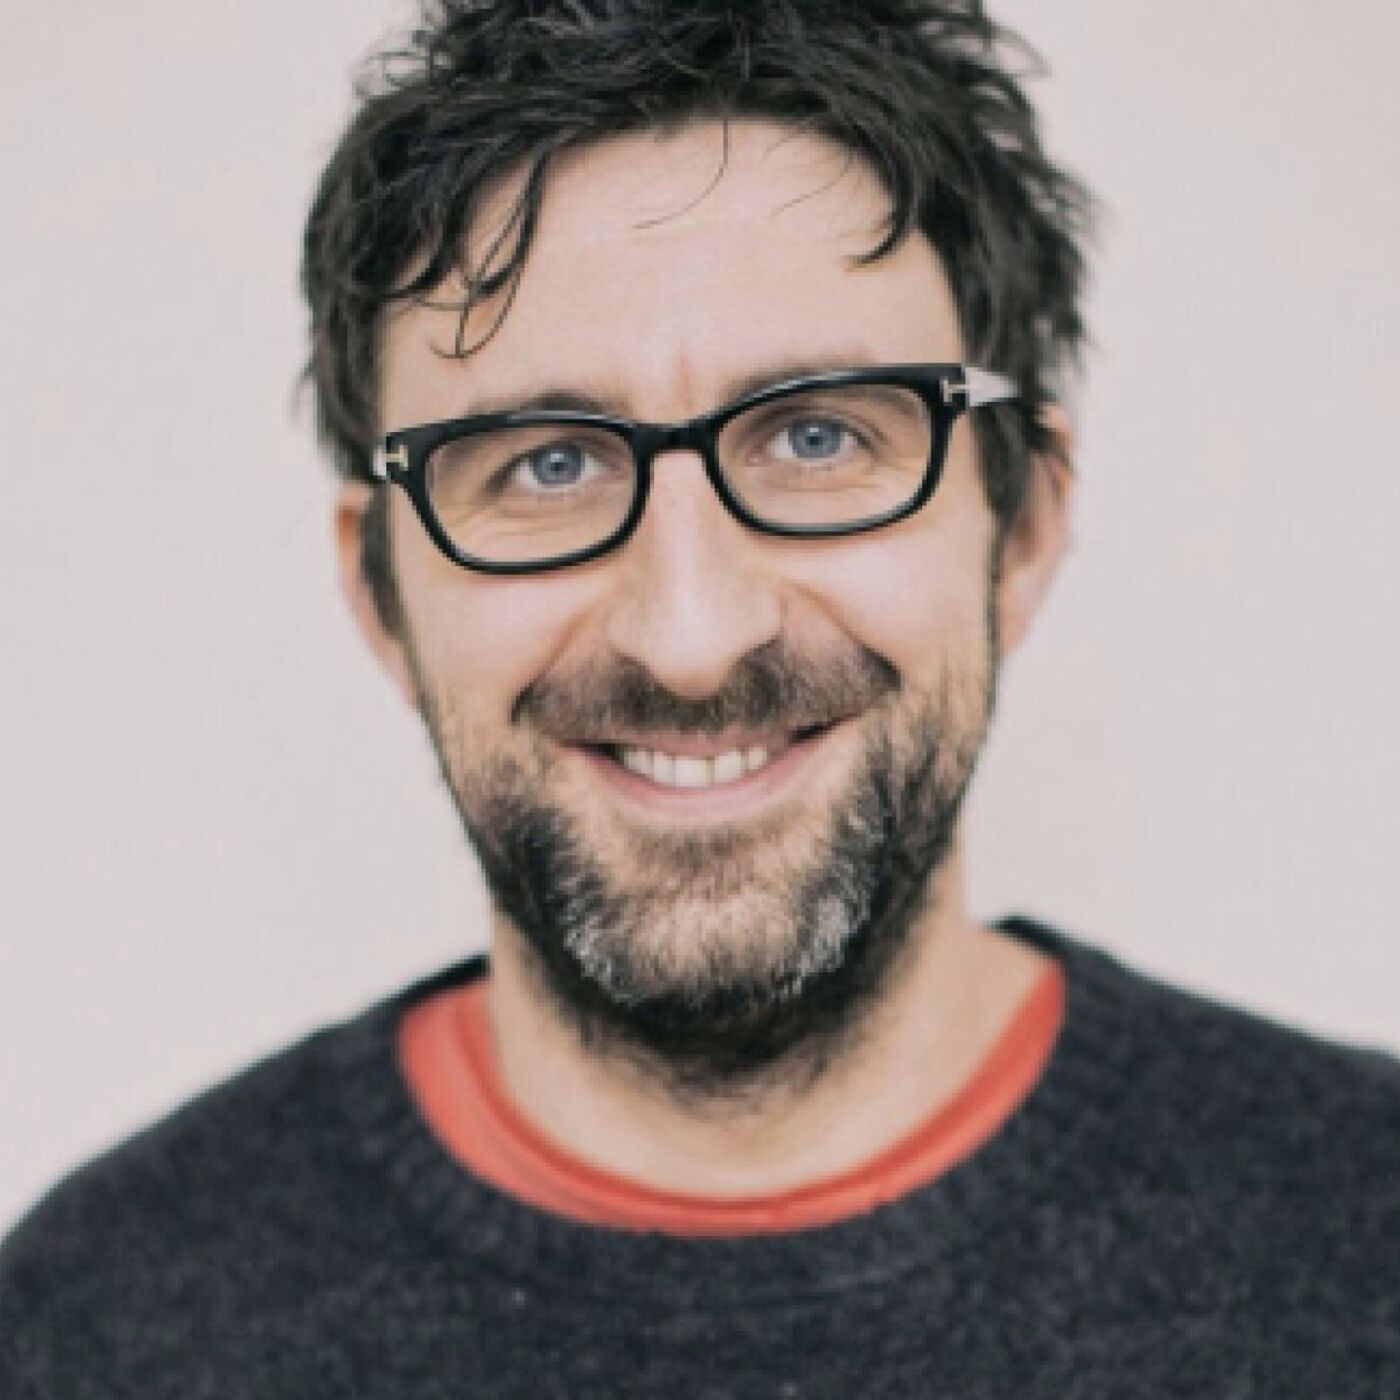 Comedian Mark Watson - 2021: Therapy, boundaries and hope (Part Two)